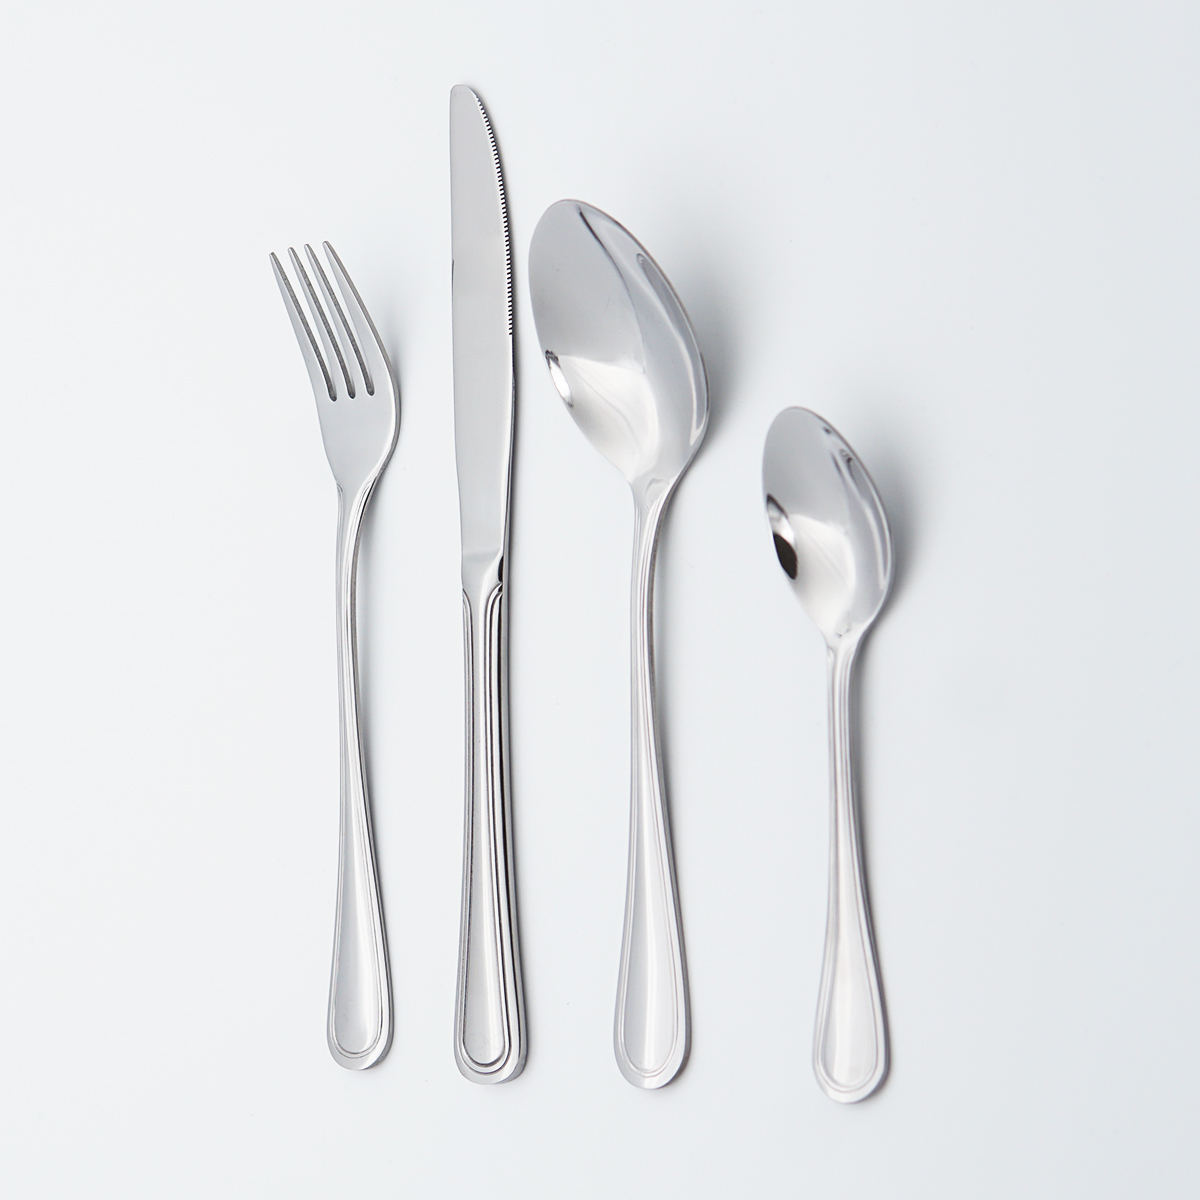 High Quality Thick Exquisite Handle Silverware Flatware Wholesale 18/10 stainless Steel Cutlery Set